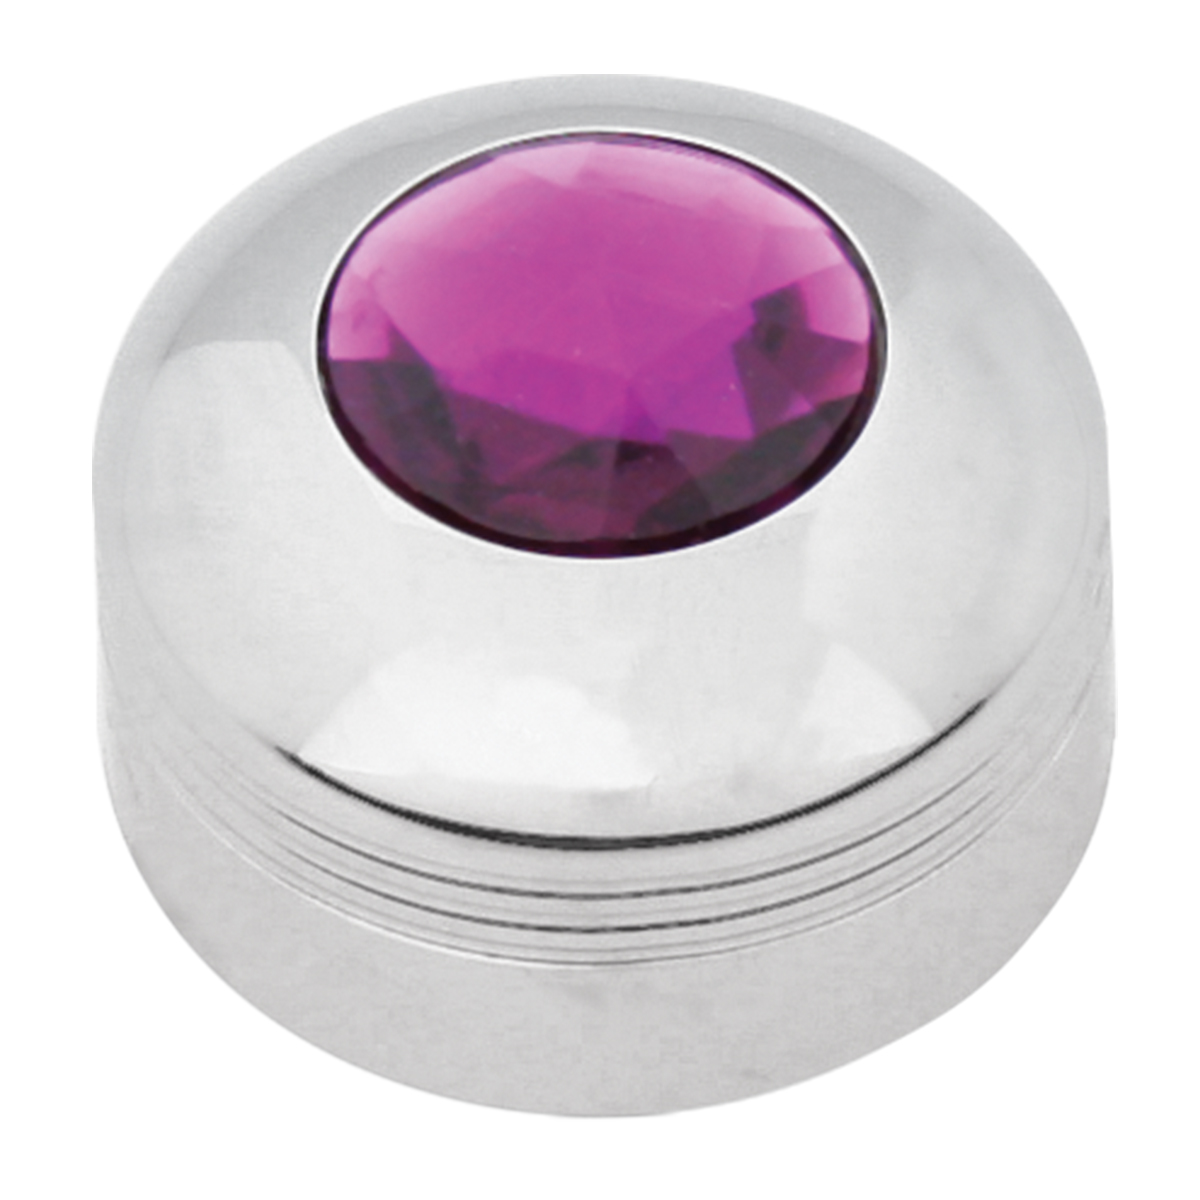 69054 Chrome Plastic A/C Know with Purple Plastic Jewel for KW